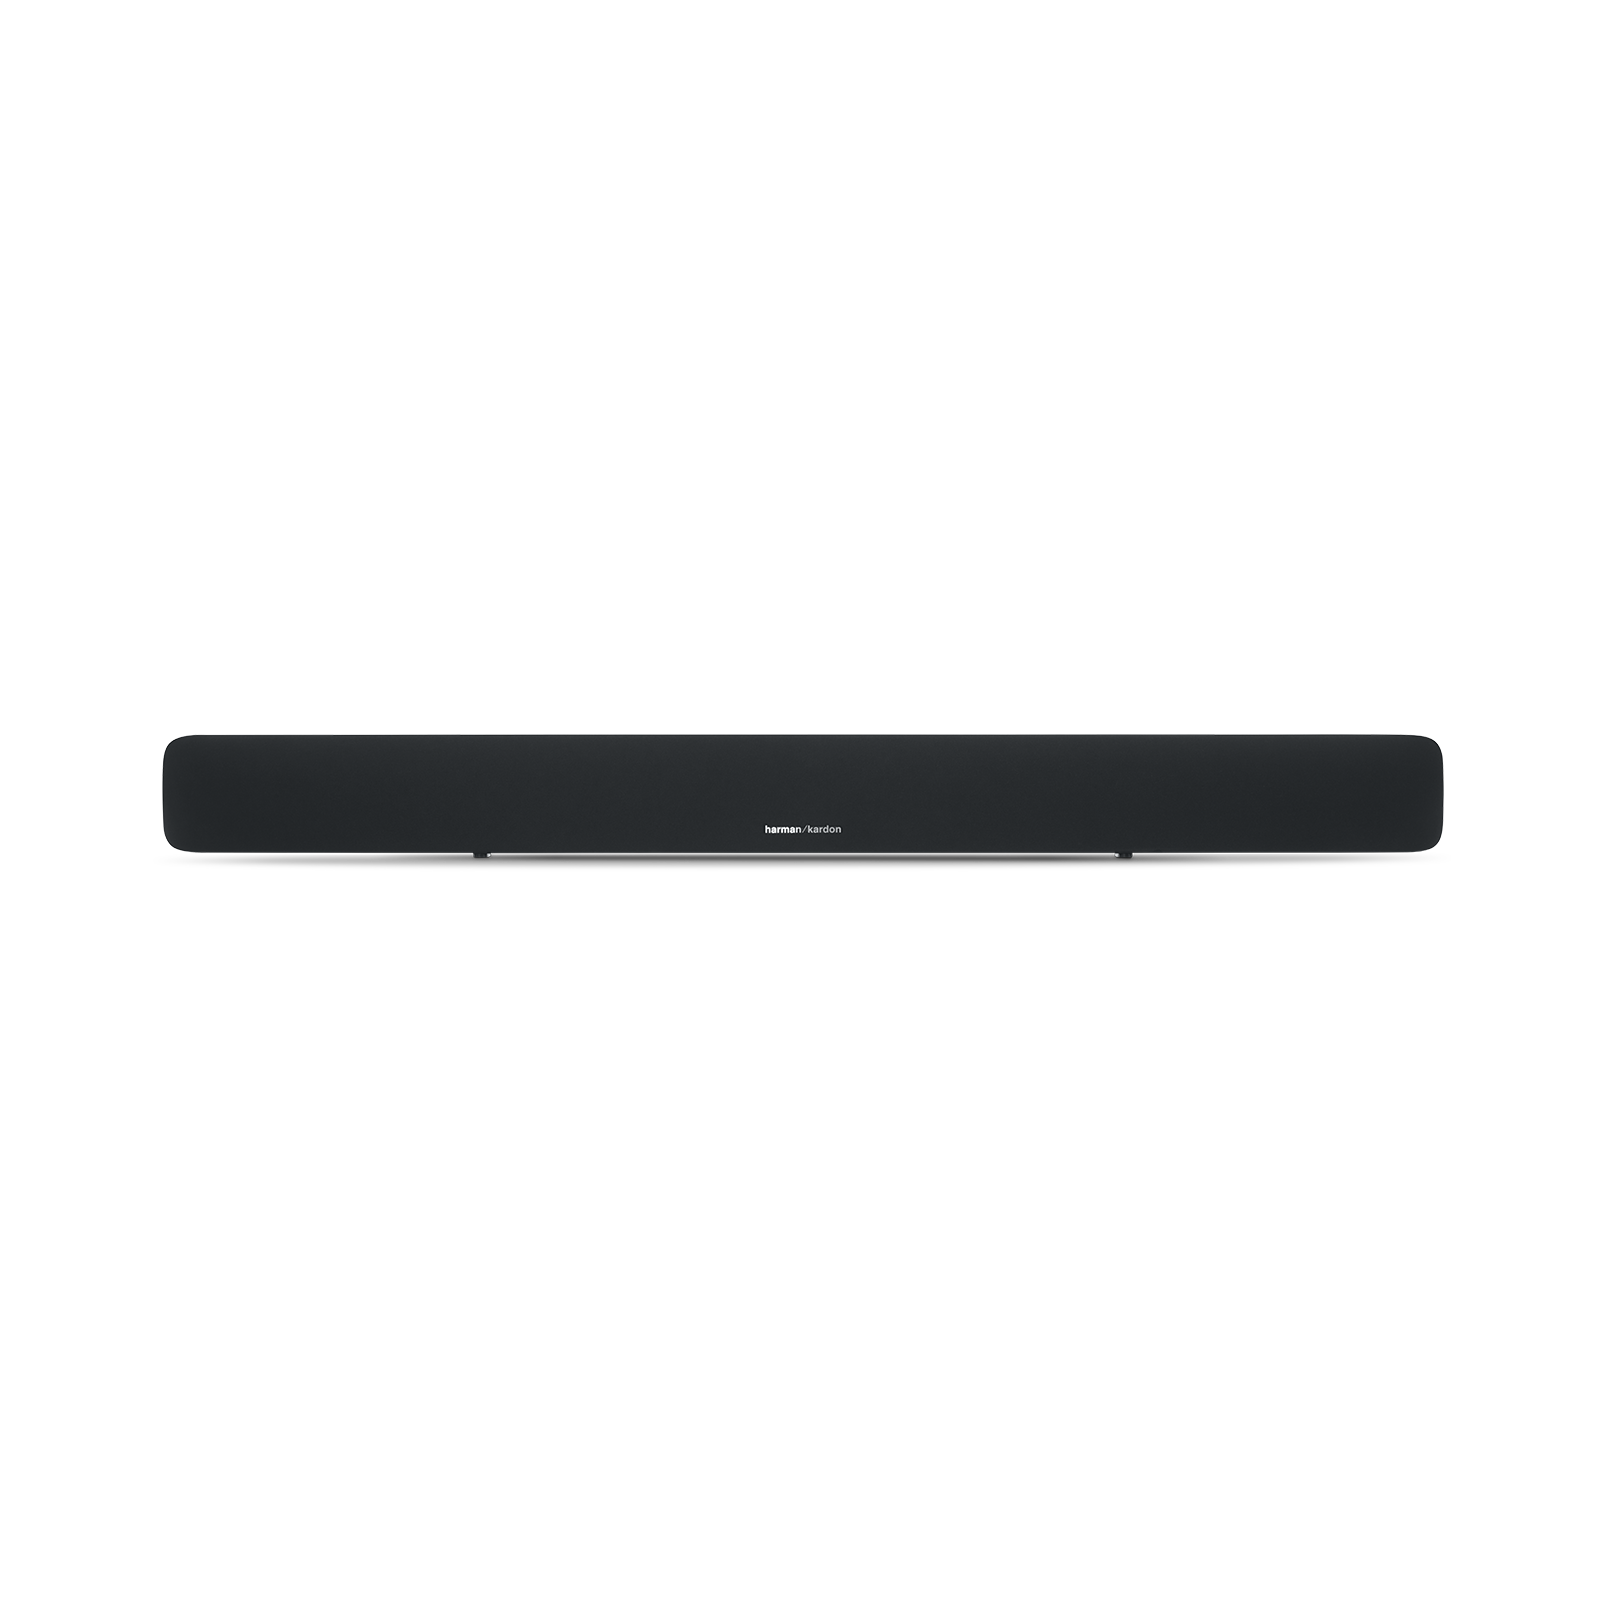 HK SB20 - Black - Advanced soundbar with Bluetooth and powerful wireless subwoofer - Detailshot 4